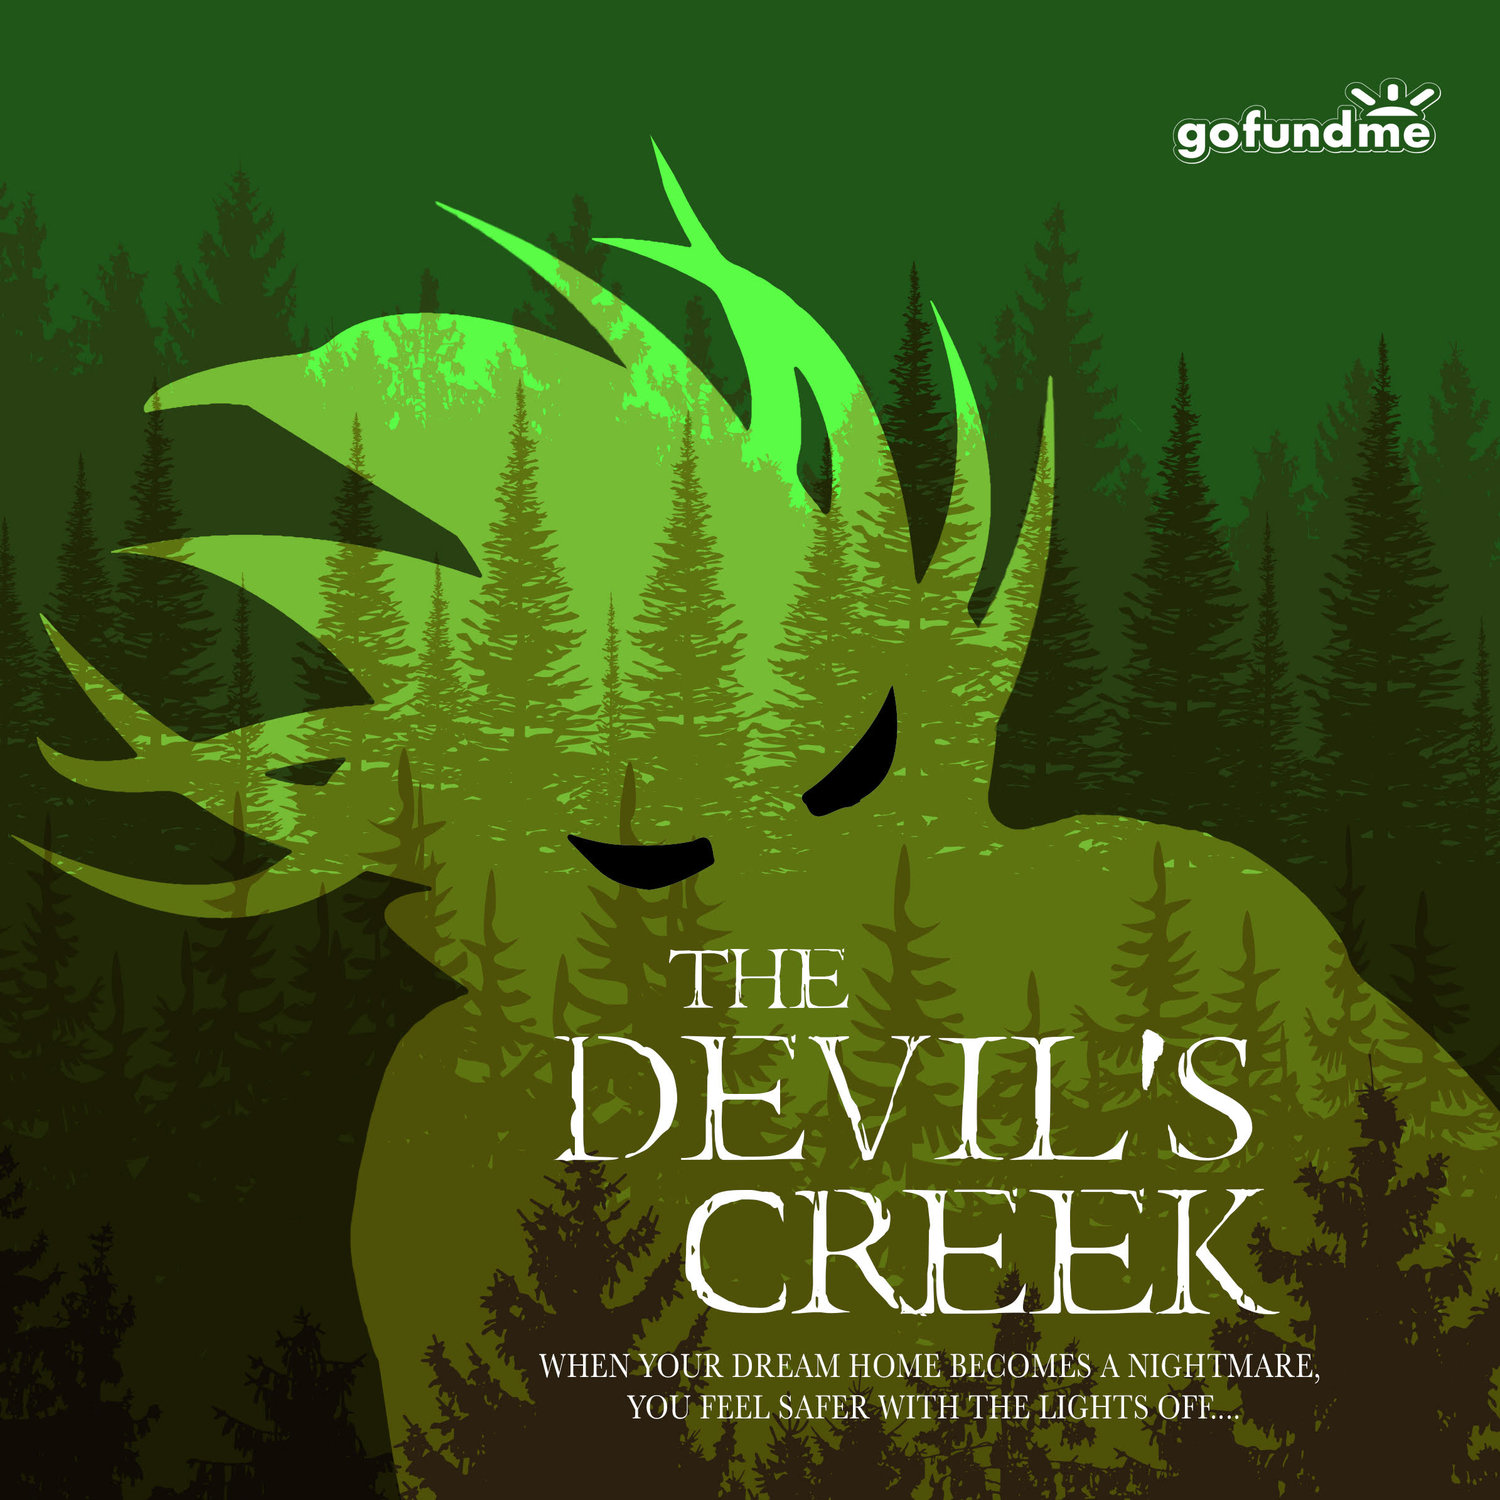 Devils Creek, the film